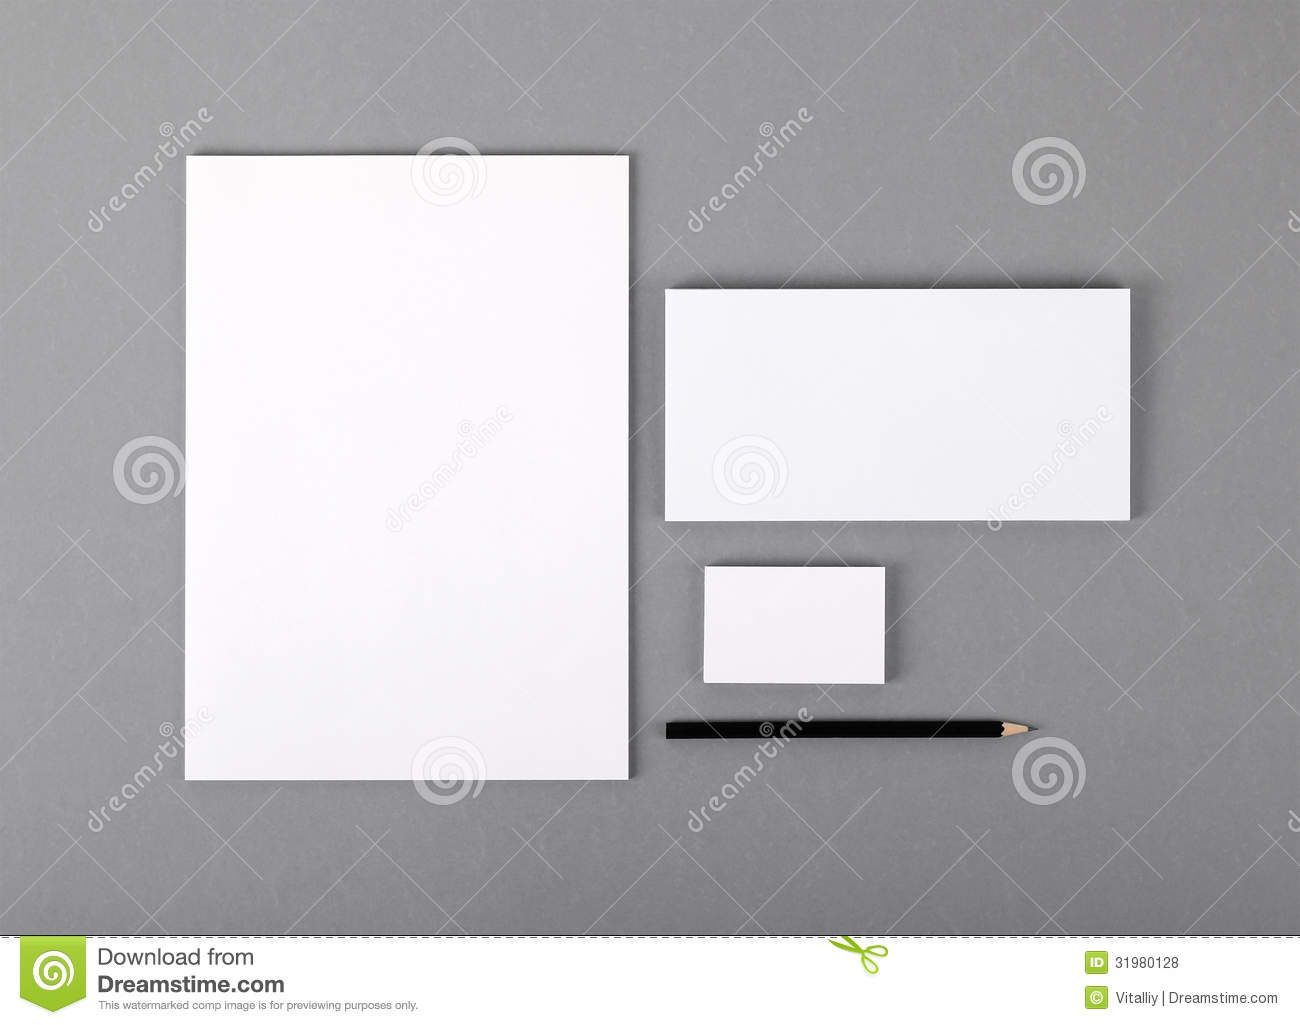 blank basic stationery letterhead flat business card envelope stock photo image 31980128. Black Bedroom Furniture Sets. Home Design Ideas